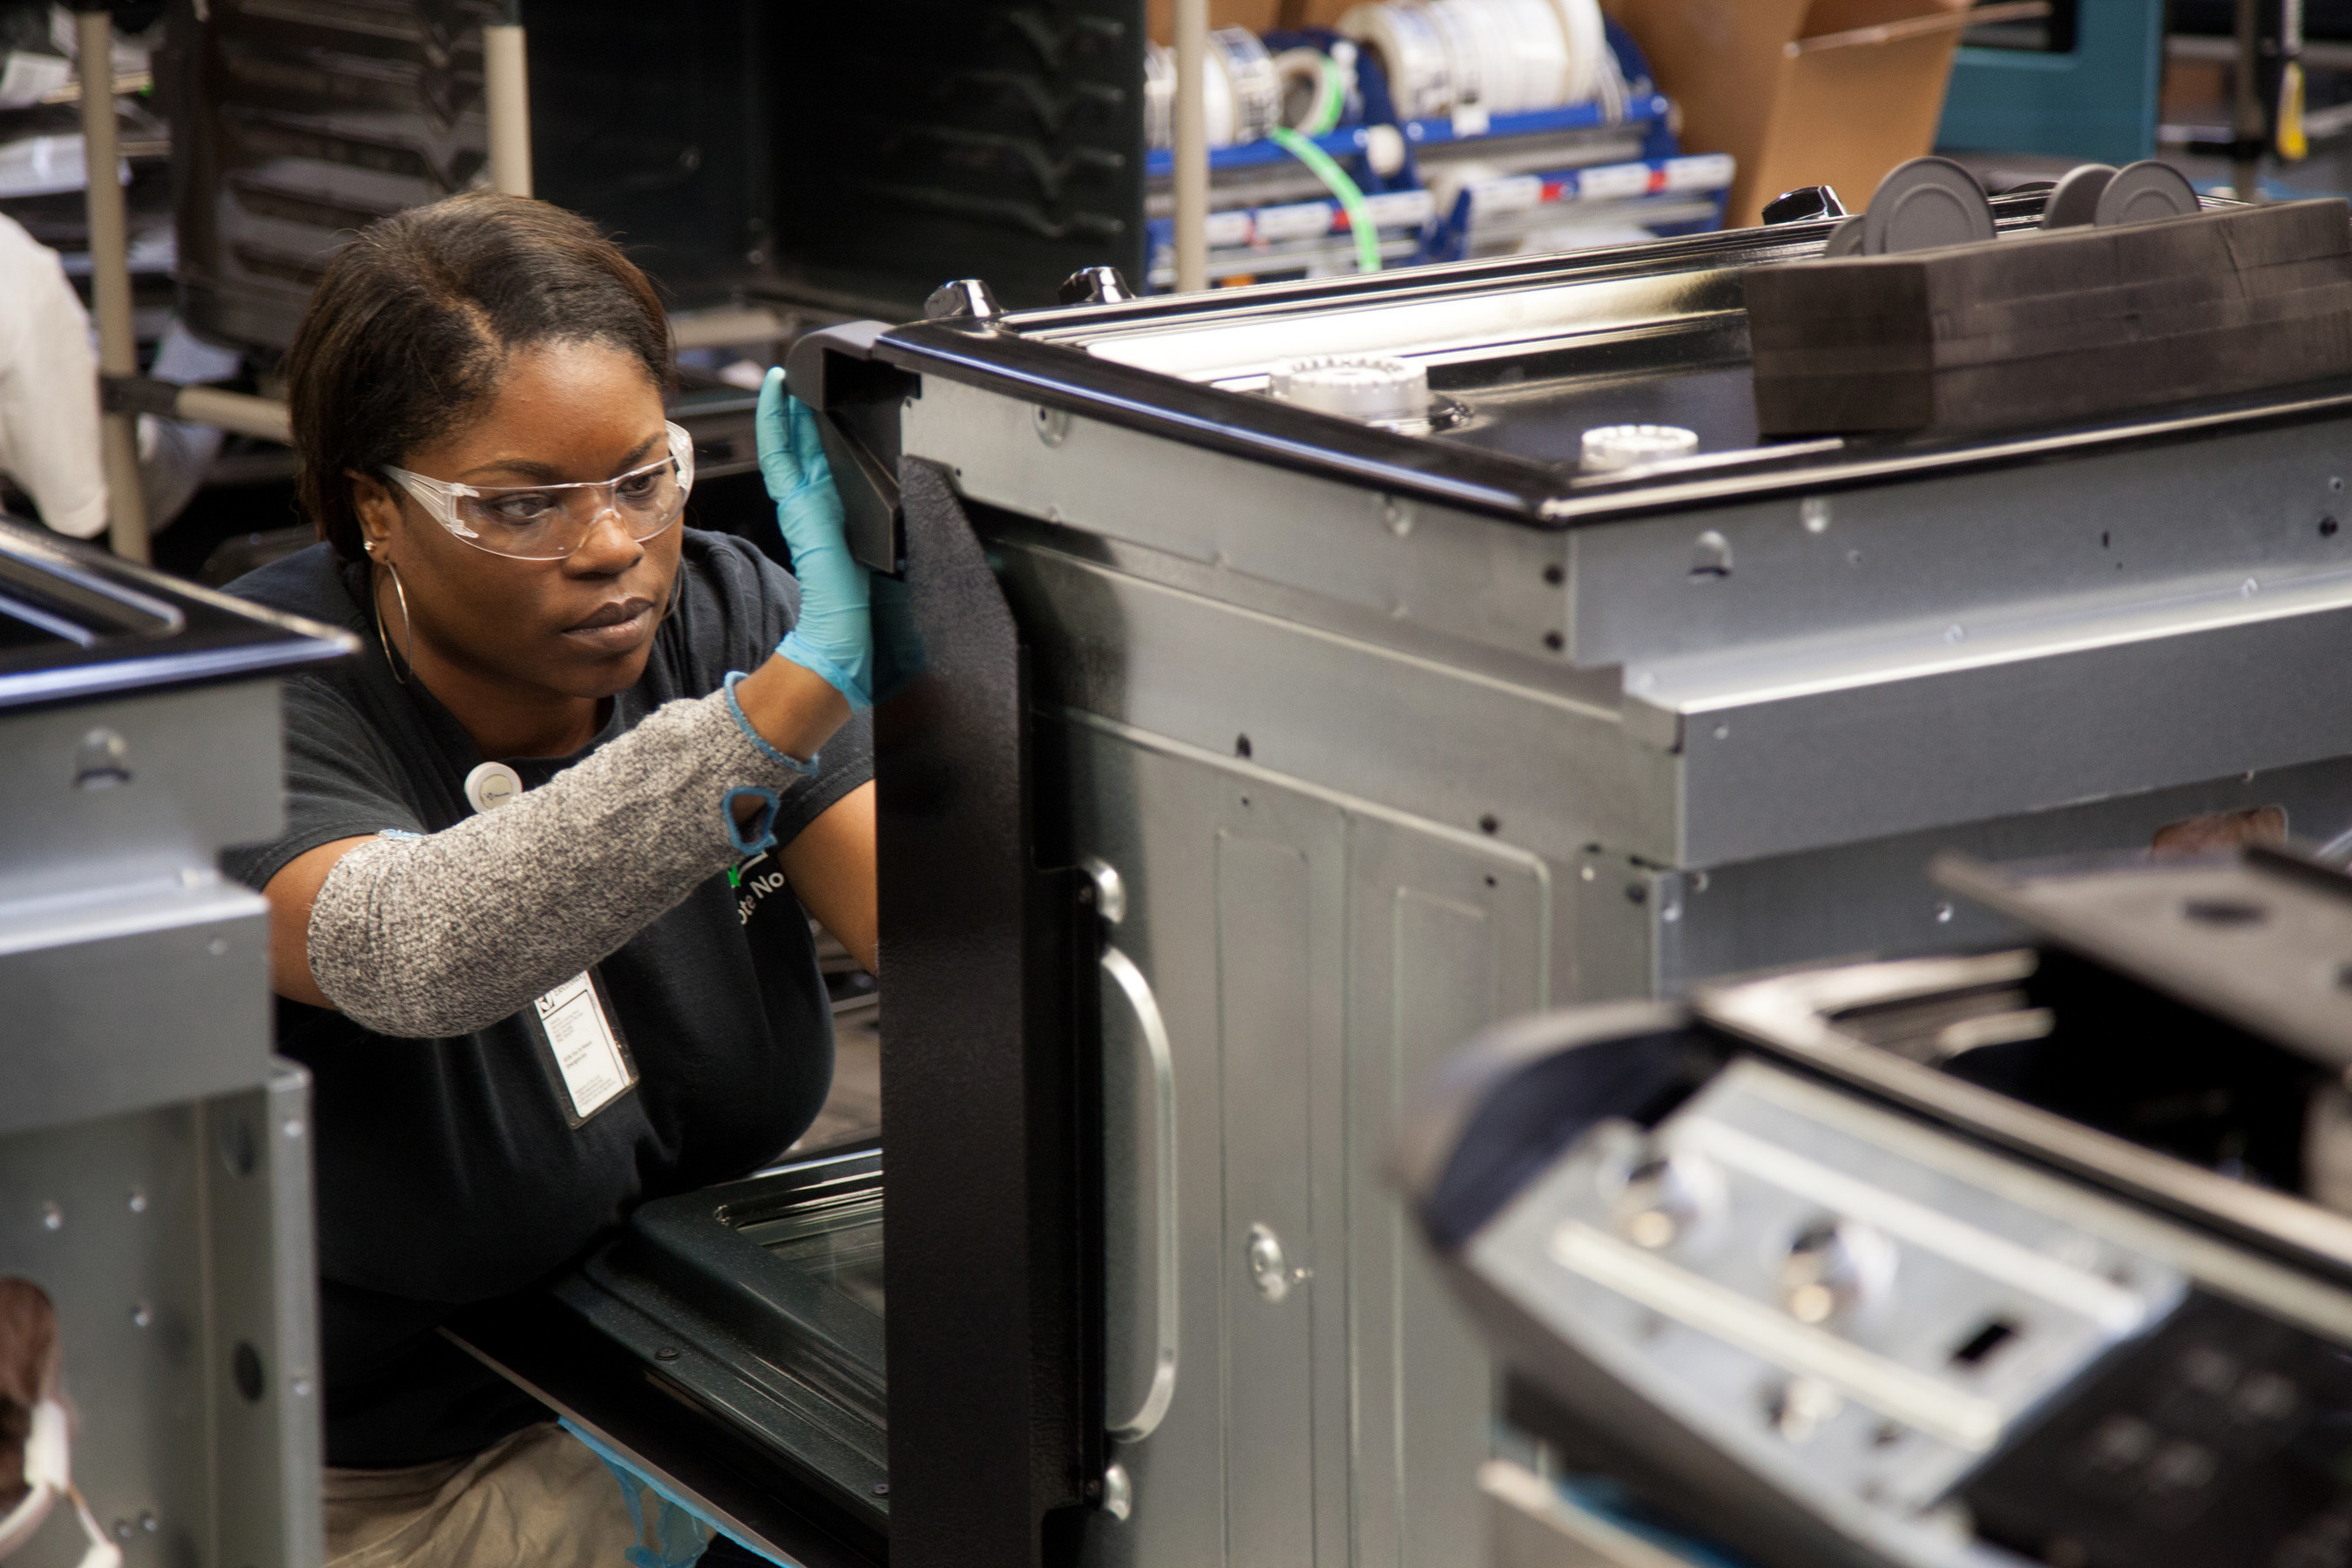 Electrolux confident in proposed GE Appliances acquisition; Says it good for competition, good for jobs, and good for consumers.